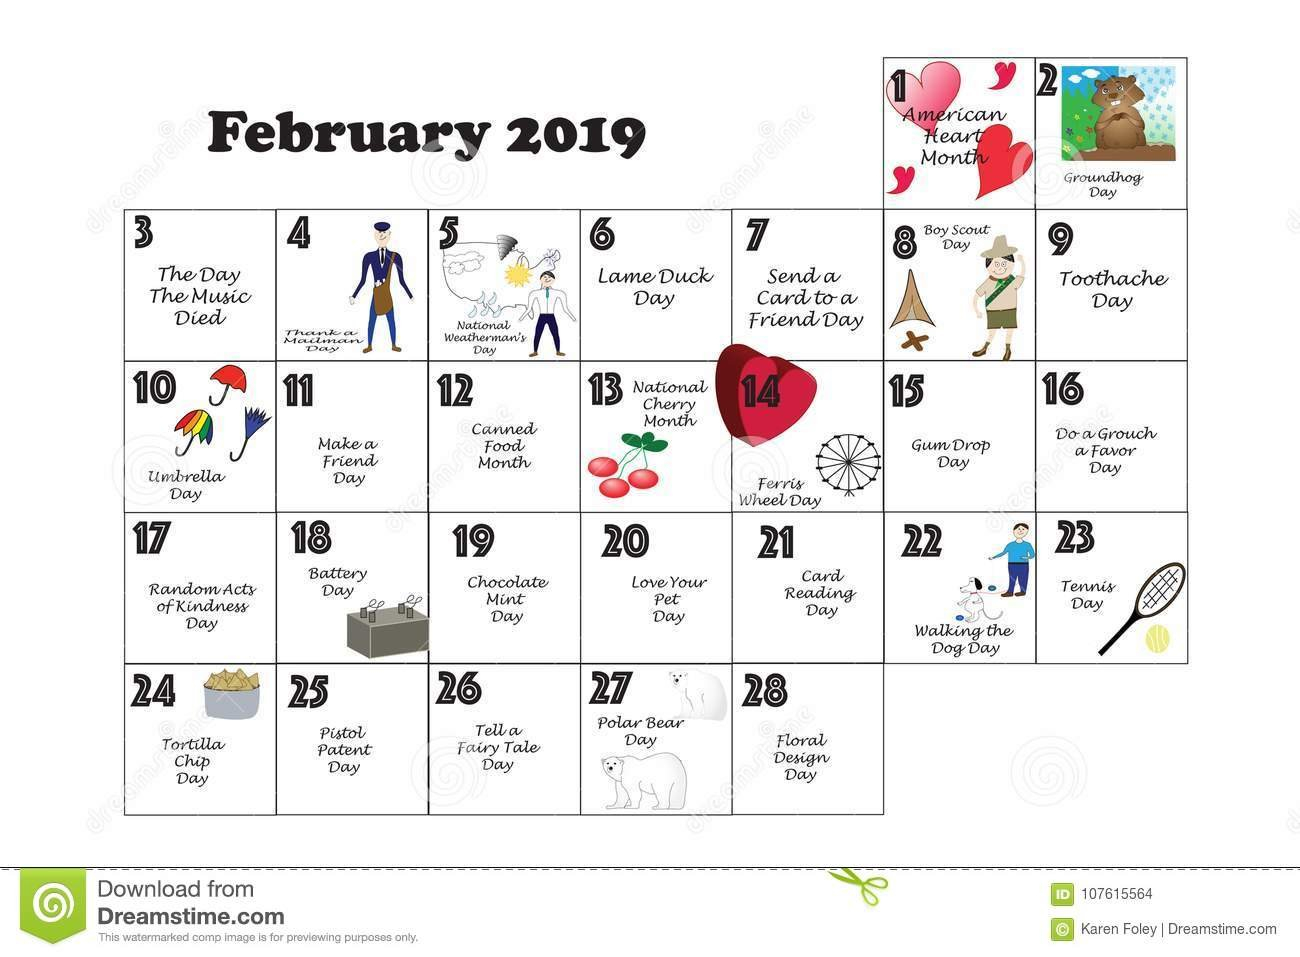 February Quirky Holidays And Unusual Events 2019 Stock Illustration Calendar 2019 Events And Holidays